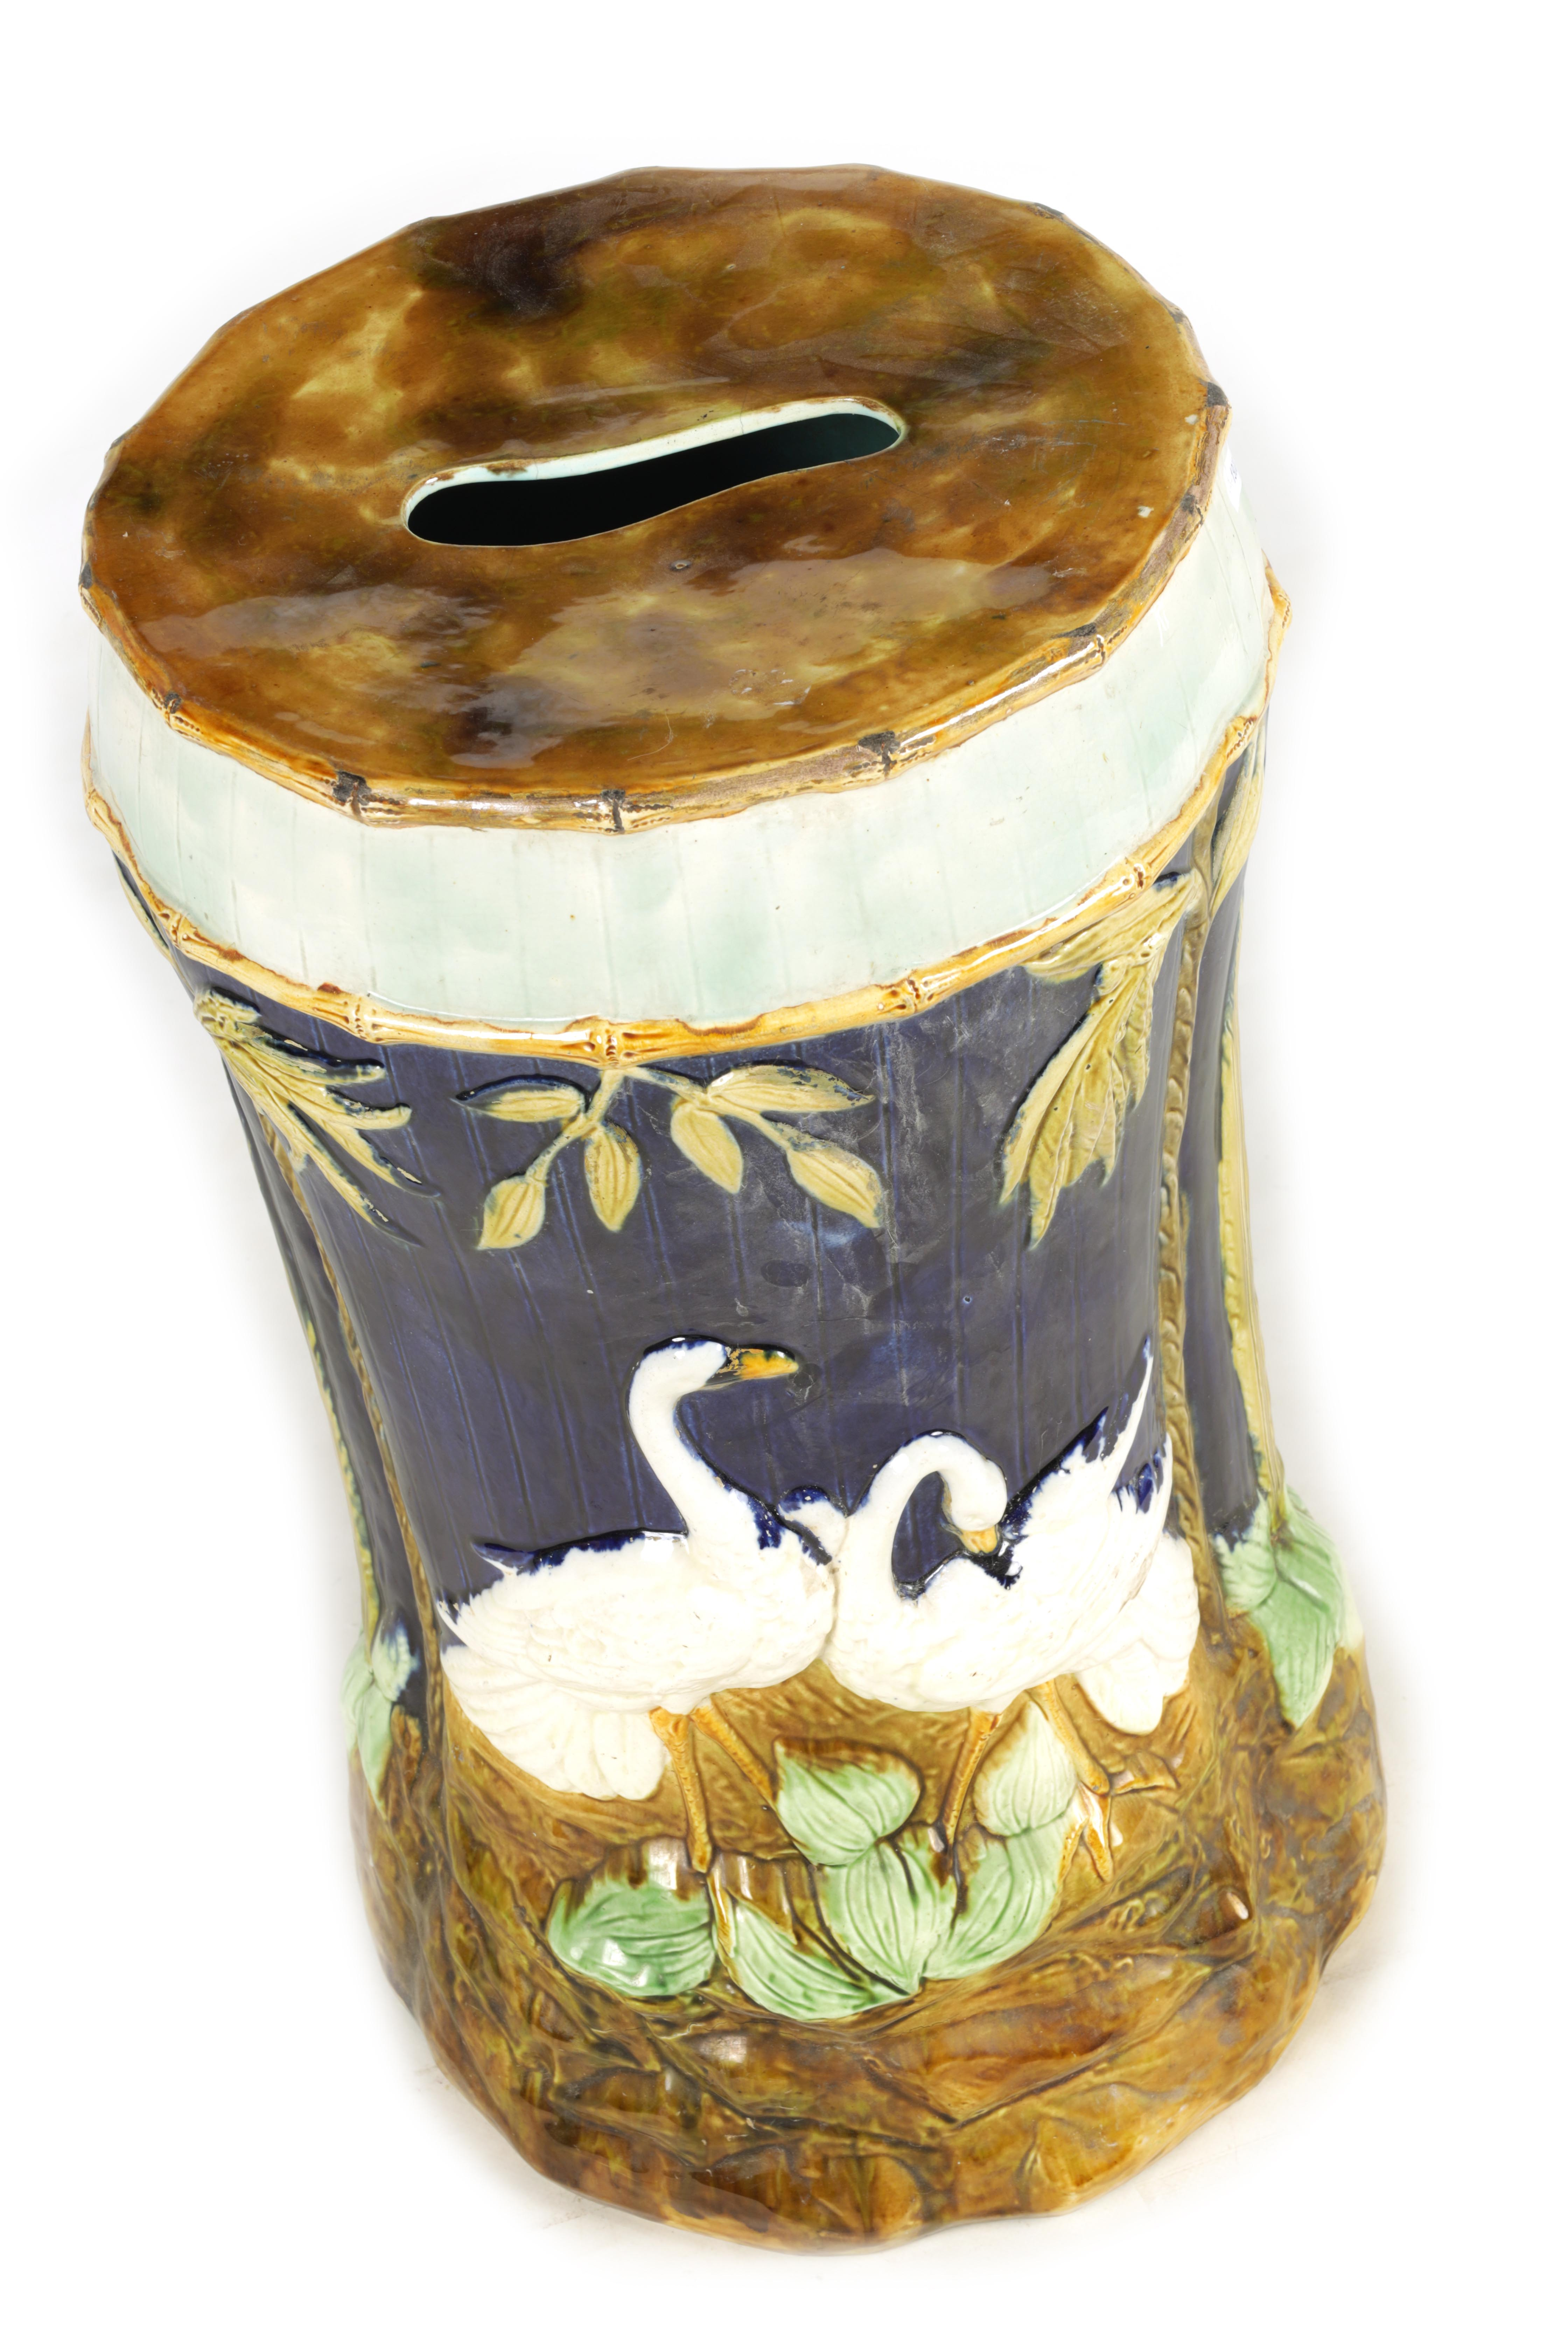 A LATE 19TH CENTURY MAJOLICA GARDEN SEAT decorated with storks between palm trees 54cm high - Image 2 of 8